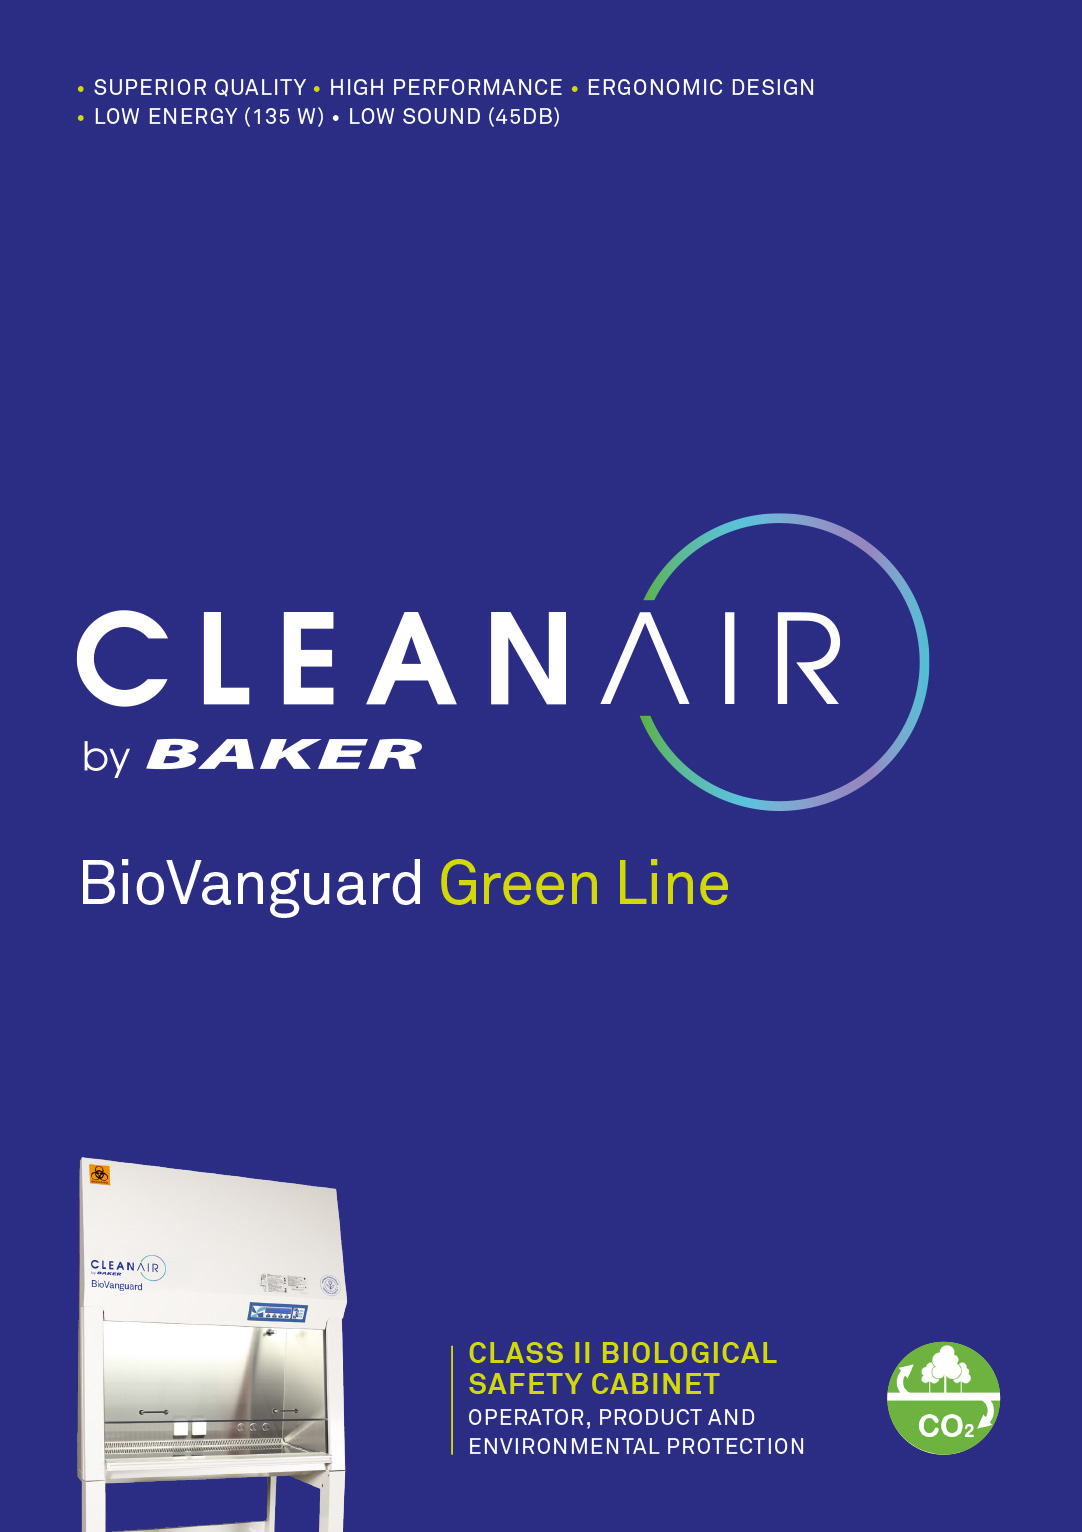 CleanAir by Baker